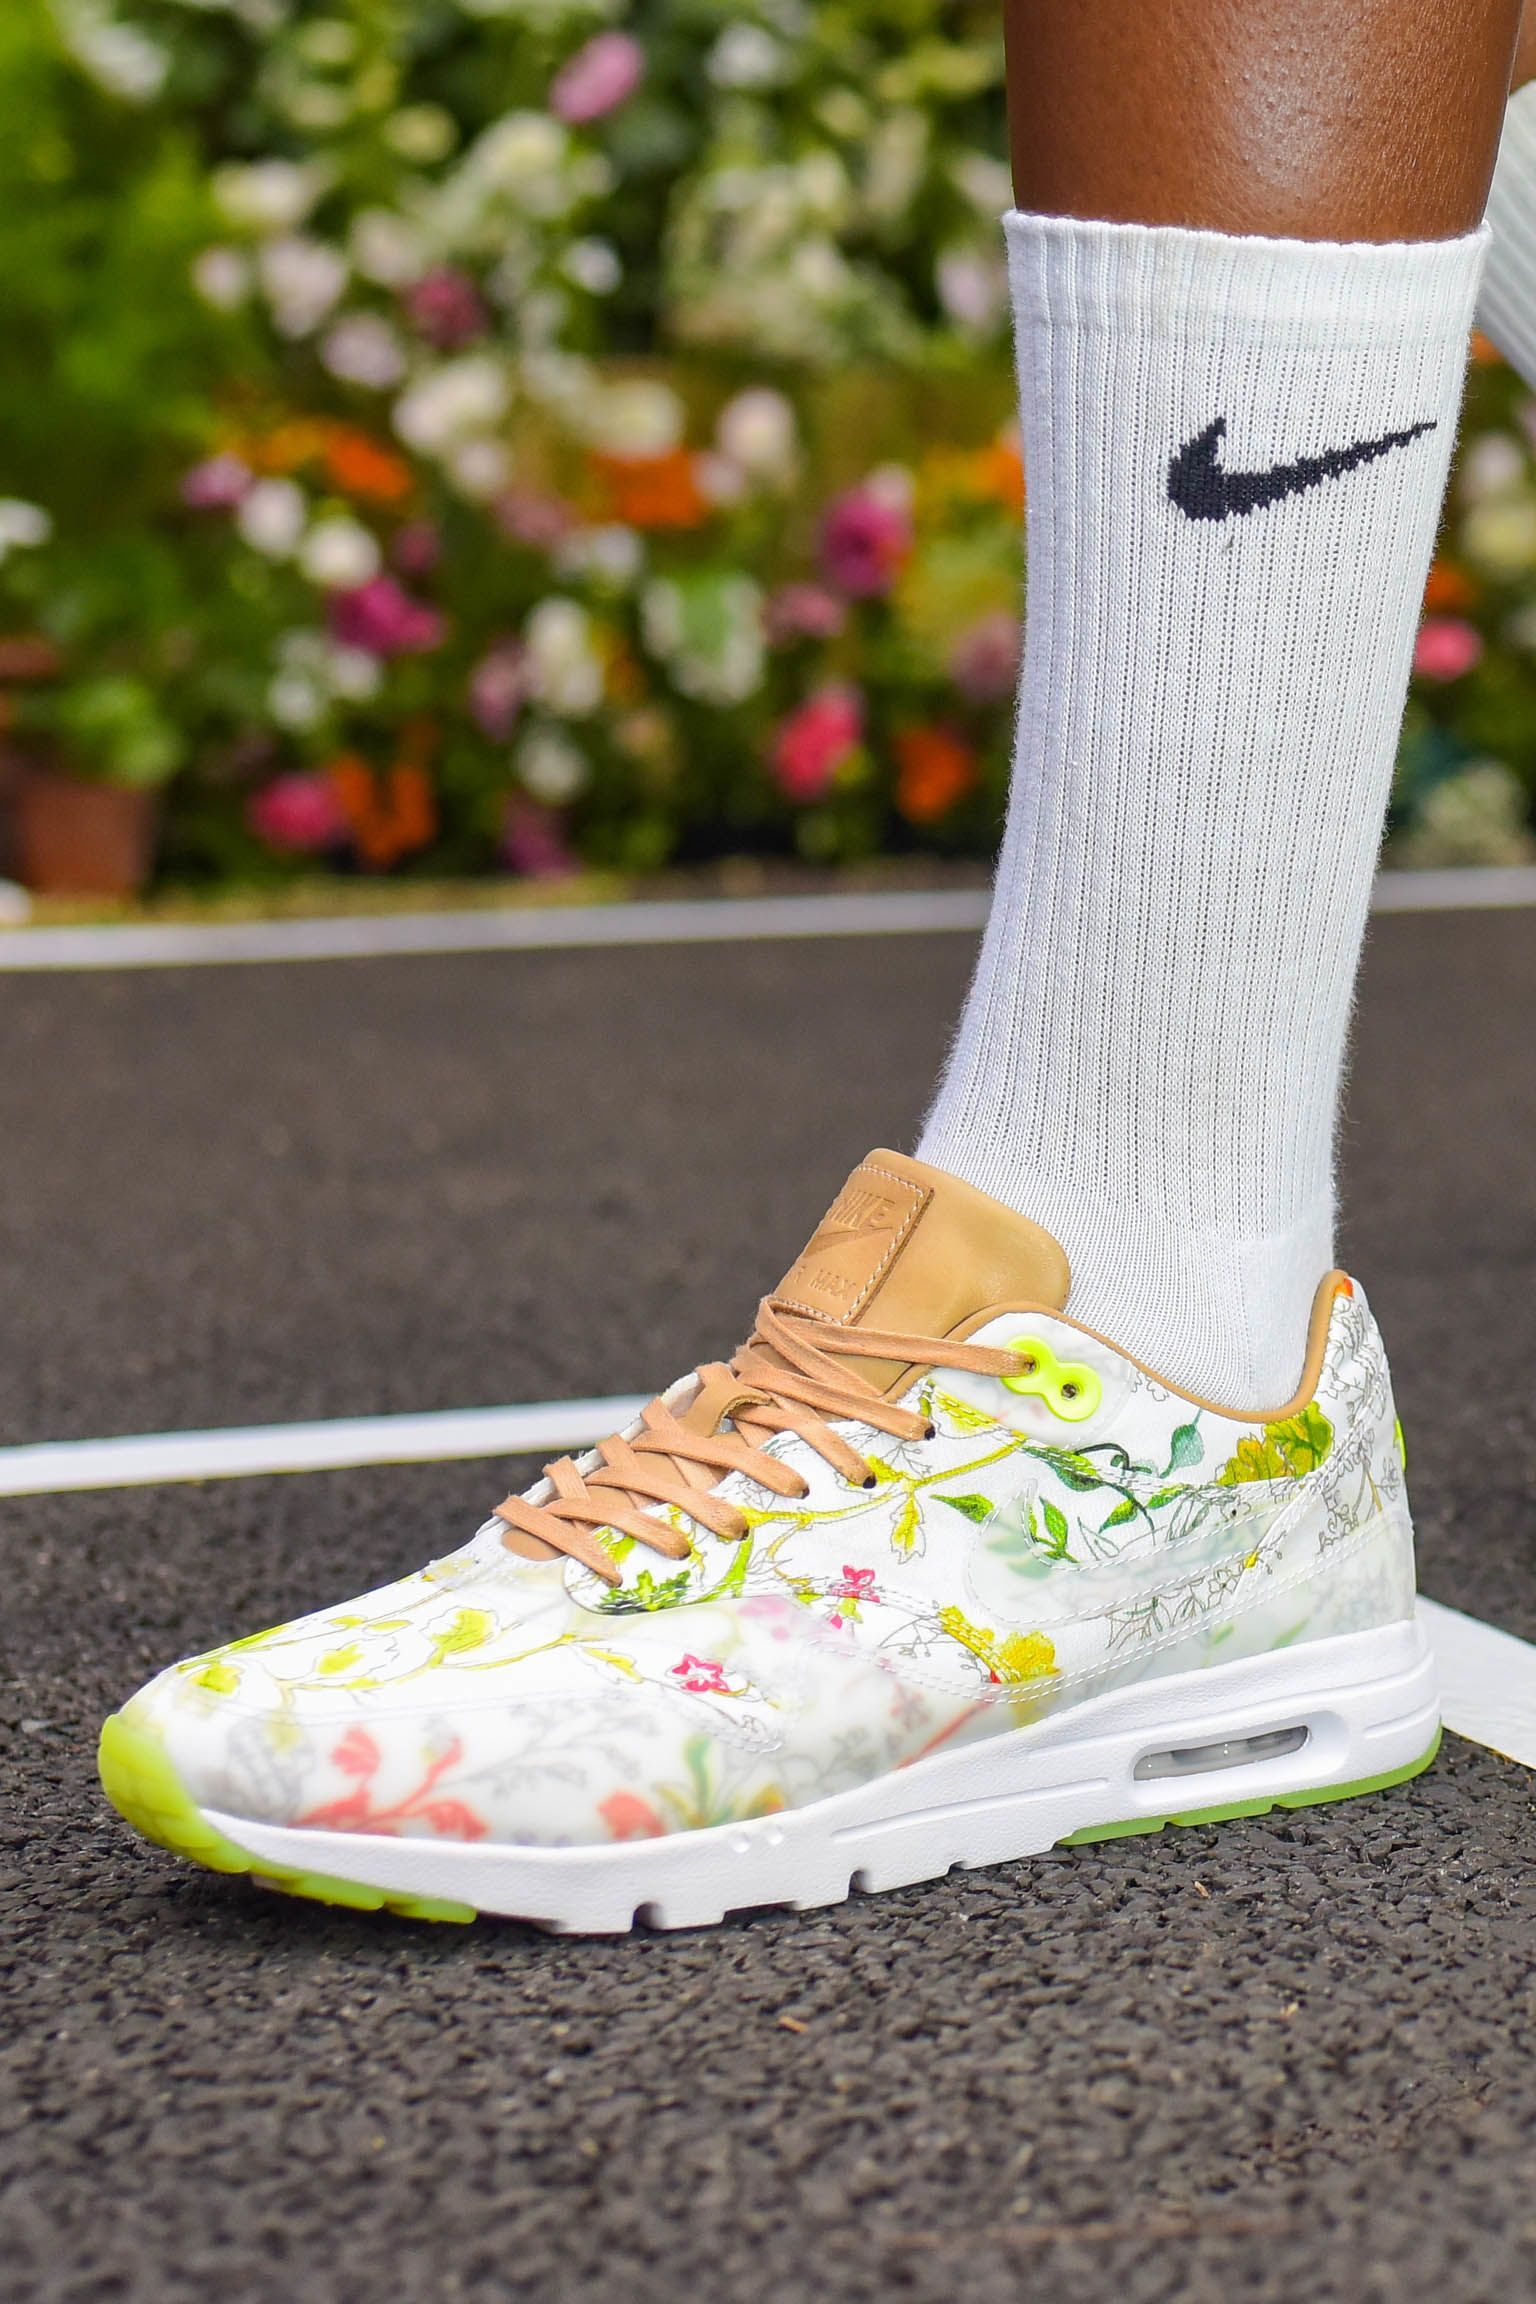 NikeCourt x Liberty Collection: Dawn Meadow